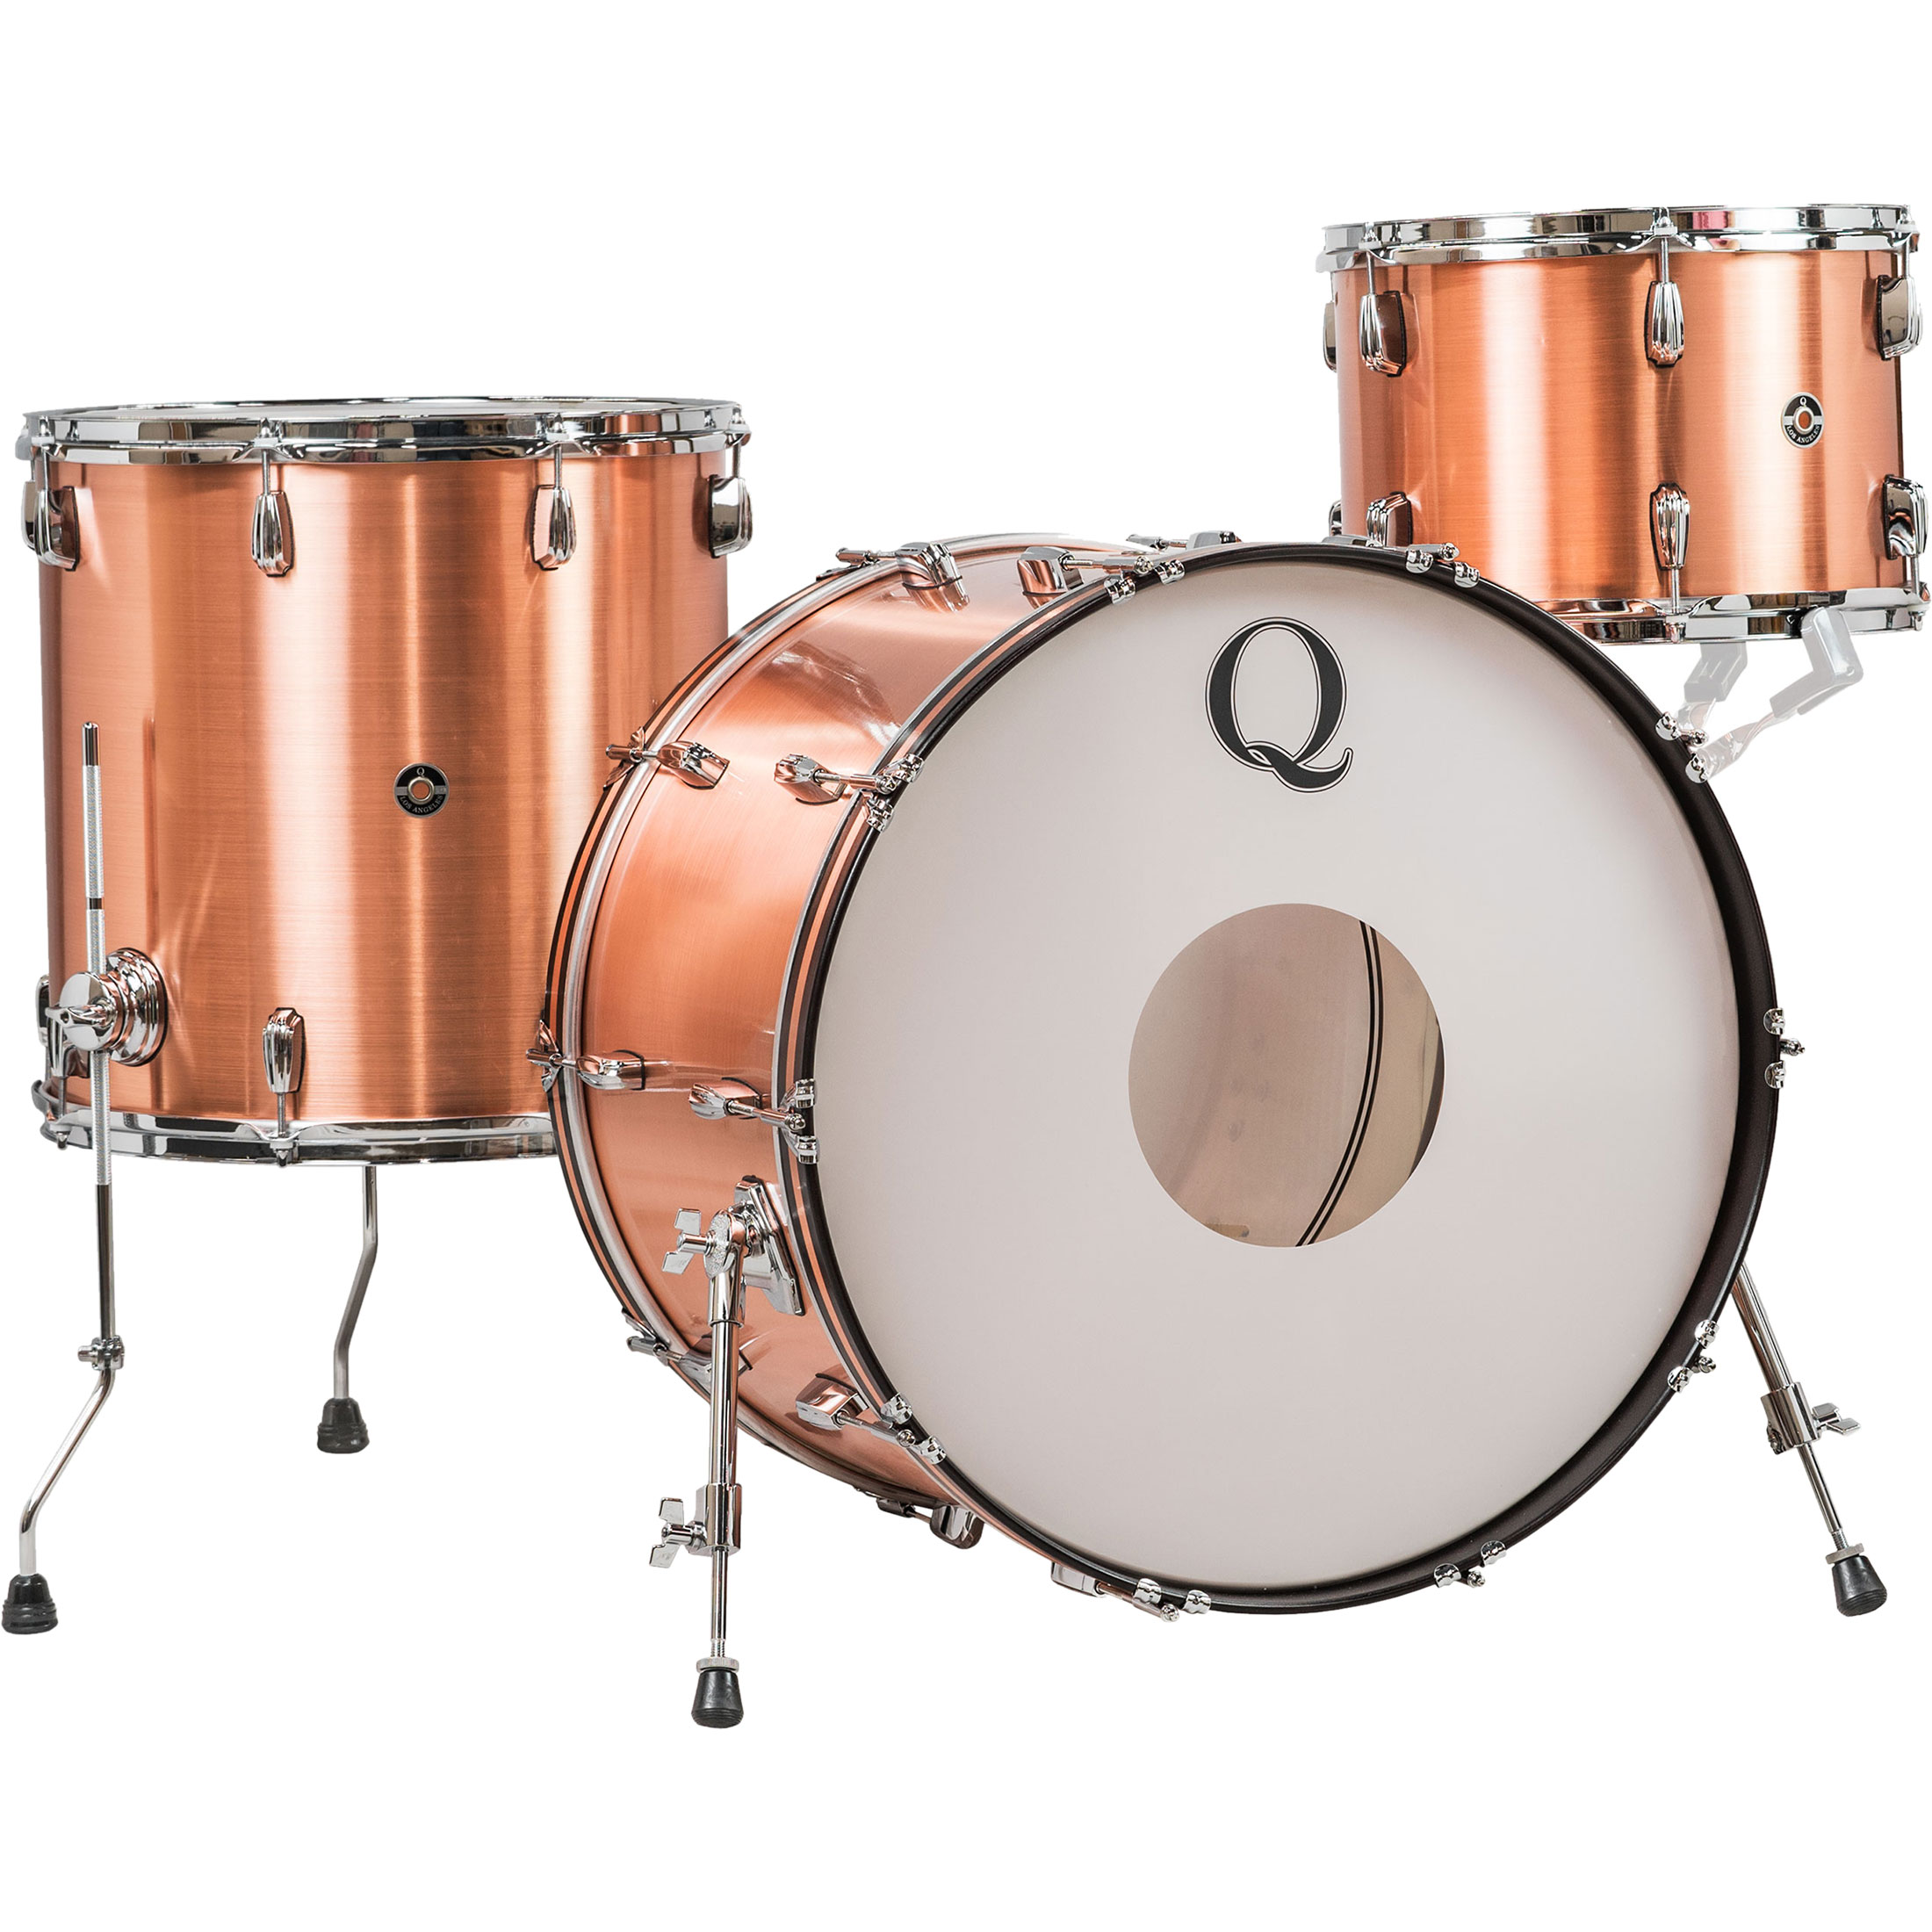 Q Drum Co. 3-Piece Raw Copper Shell Pack (22B-13-16F)